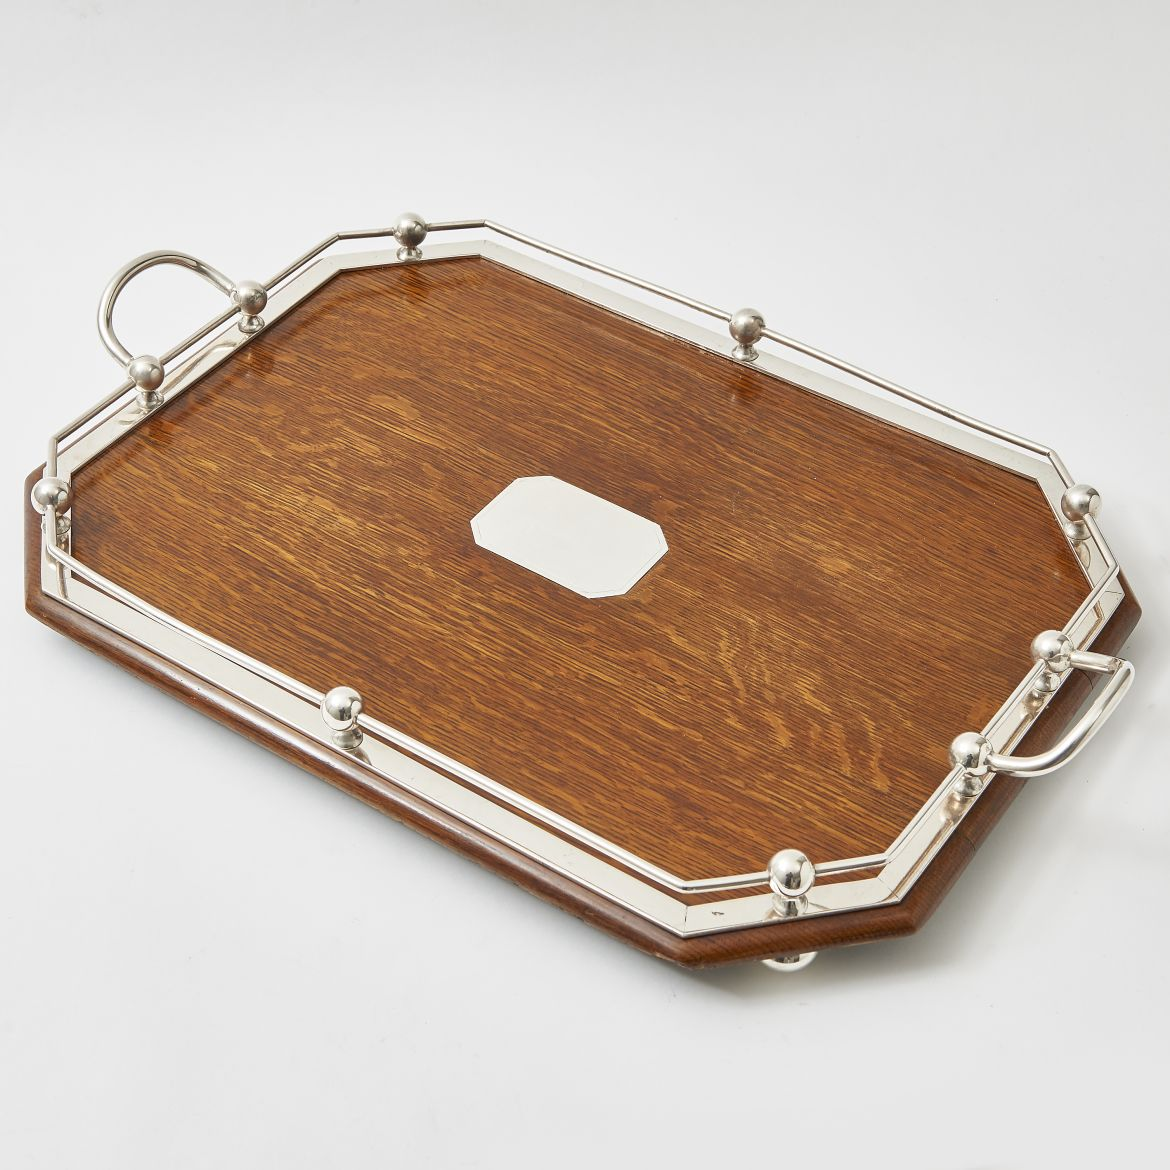 Edwardian Oak Gallery Tray